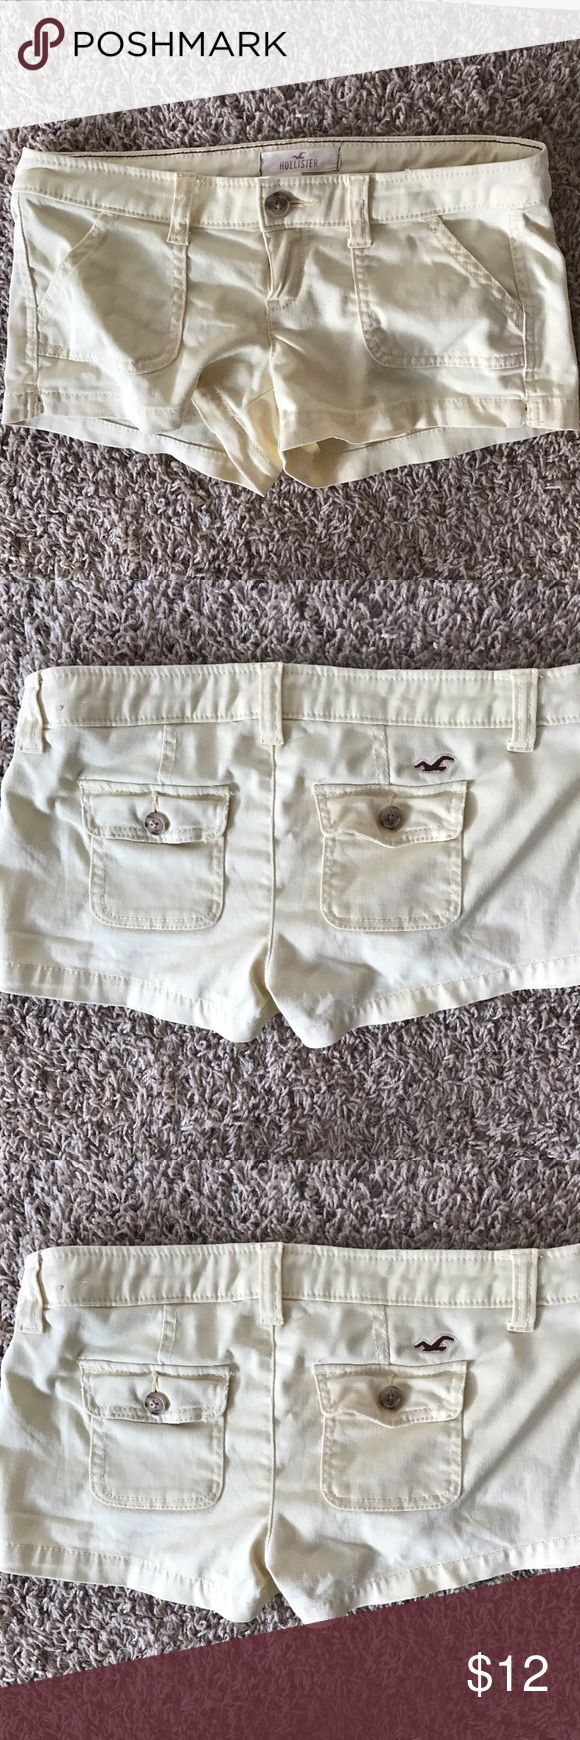 """HOLLISTER Women's Yellow Stretch Shorts Size 0 Size 0 Waist left to right 15"""" Length top to bottom 9.5"""" Color light yellow  Stretch  98% cotton  2% elastine Hollister Shorts"""